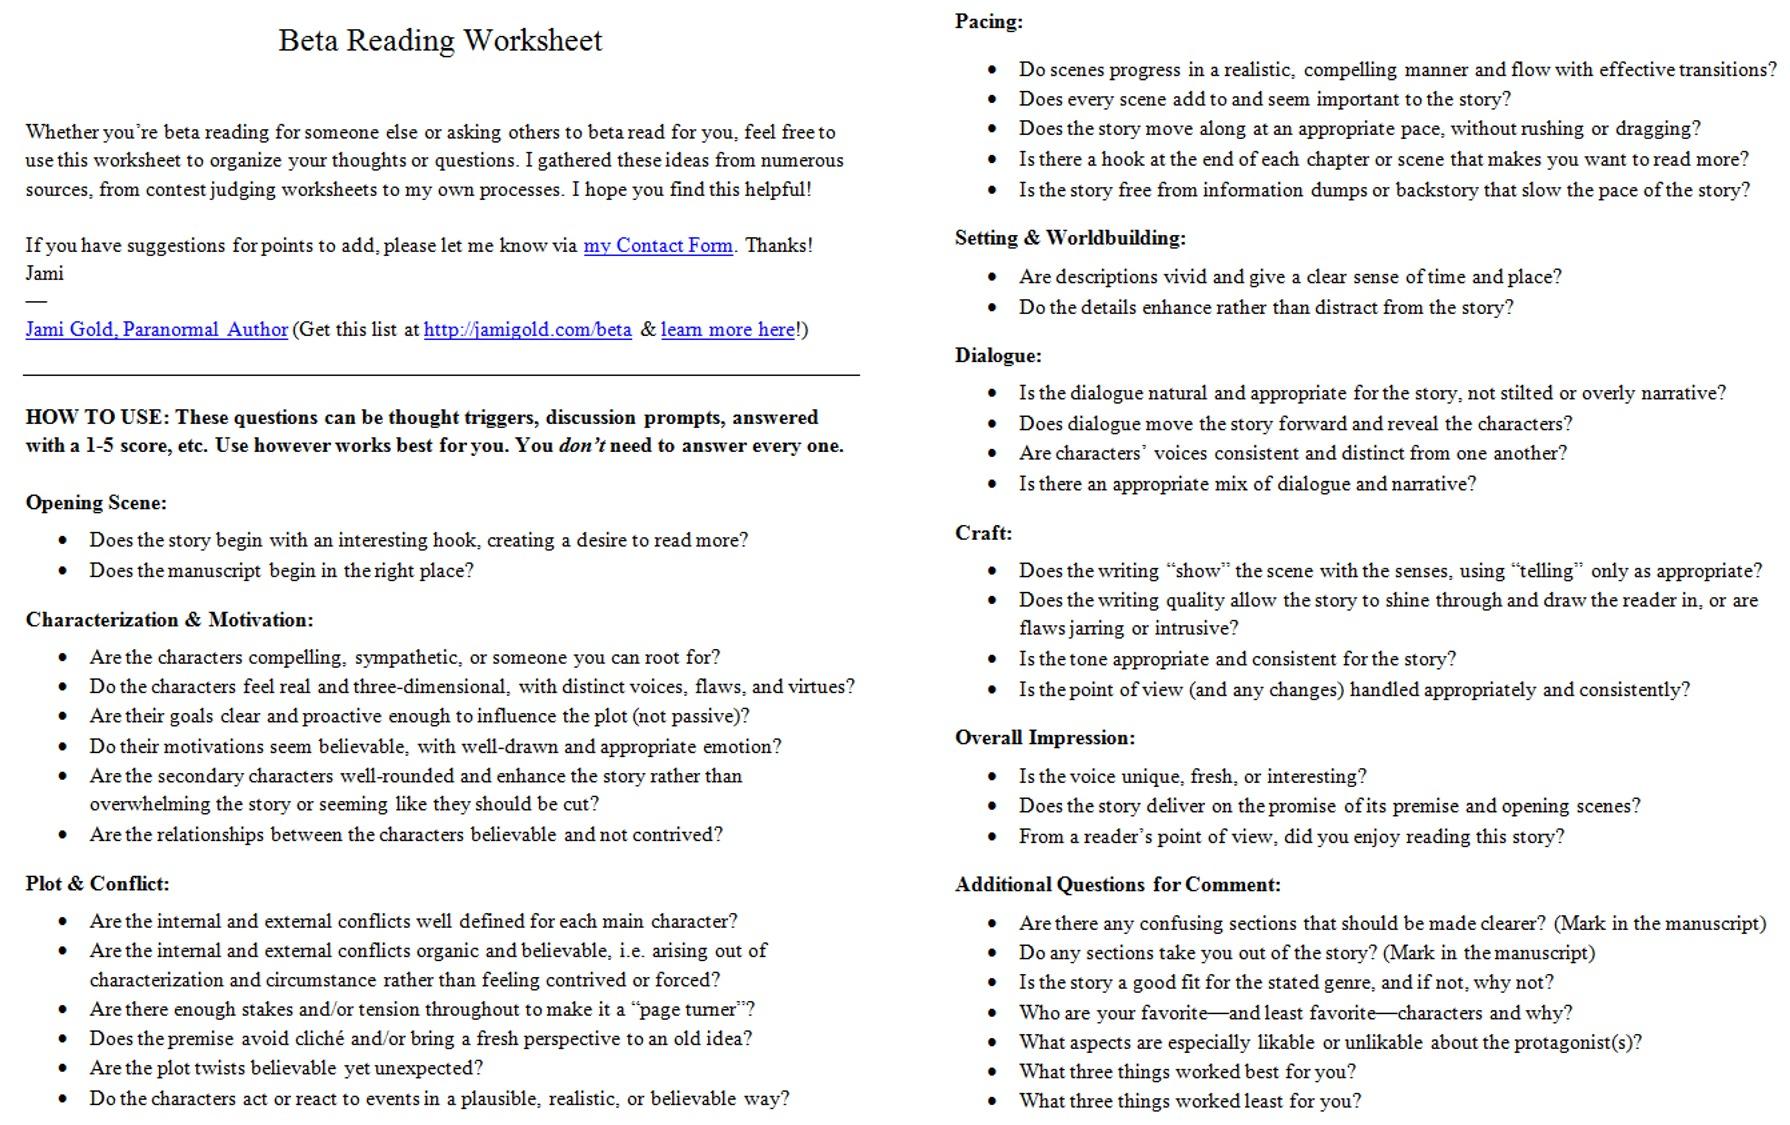 Weirdmailus  Pleasing Worksheets For Writers  Jami Gold Paranormal Author With Engaging Screen Shot Of The Twopage Beta Reading Worksheet With Cute Elementary Vocabulary Worksheets Also Science Worksheets Online In Addition Volume Capacity Worksheets And Reverse Percentages Worksheet As Well As Time Worksheets Printables Additionally Compound Subject And Compound Predicate Worksheet From Jamigoldcom With Weirdmailus  Engaging Worksheets For Writers  Jami Gold Paranormal Author With Cute Screen Shot Of The Twopage Beta Reading Worksheet And Pleasing Elementary Vocabulary Worksheets Also Science Worksheets Online In Addition Volume Capacity Worksheets From Jamigoldcom